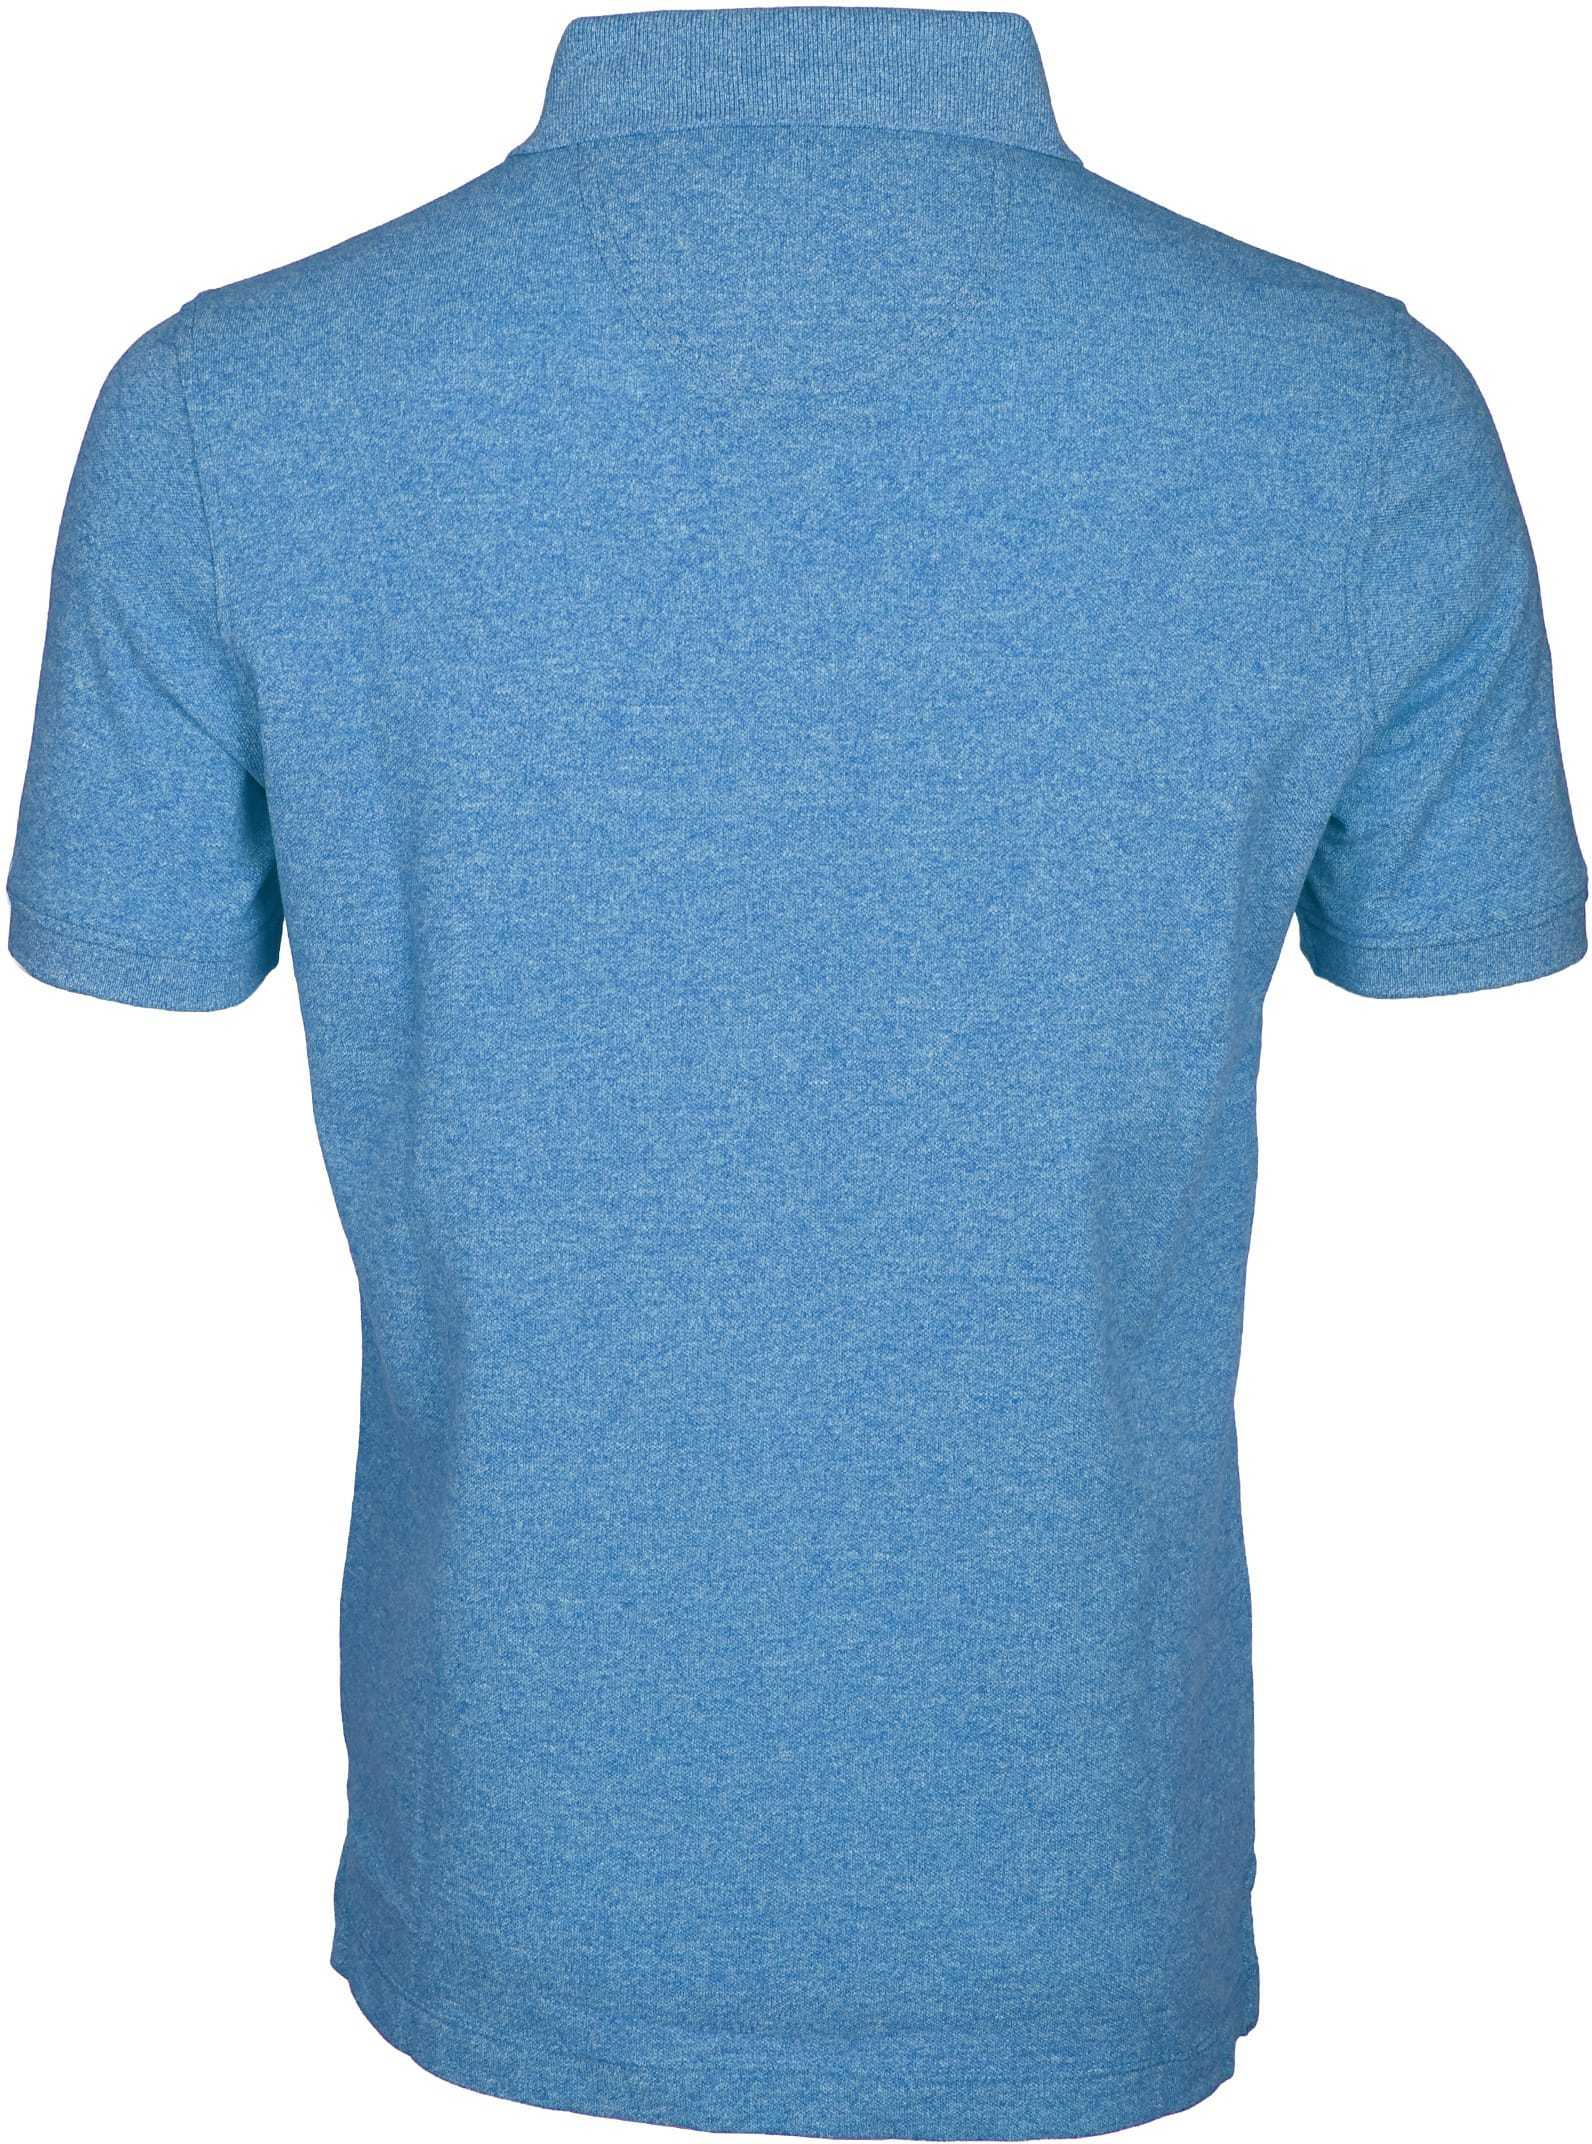 Suitable Poloshirt Jaspe Hellblau foto 3